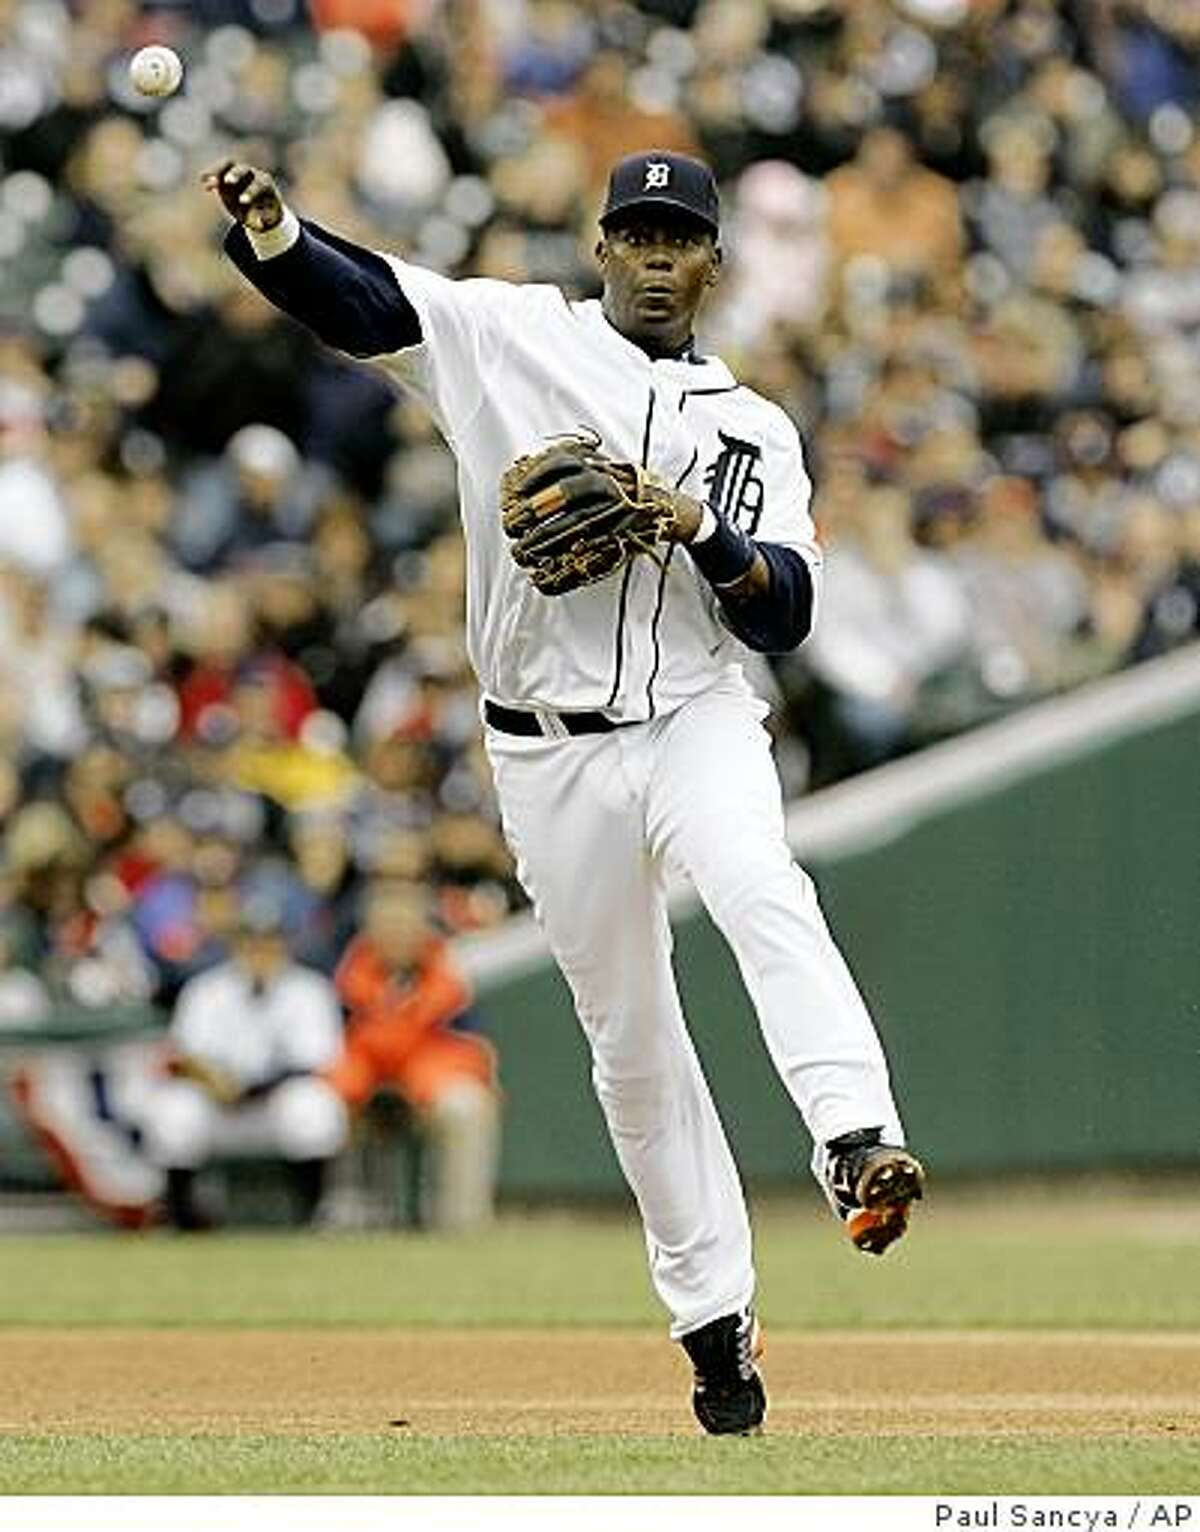 ** FILE ** This March 31, 2008 file photo shows Detroit Tigers shortstop Edgar Renteria throwing to first base against the Kansas City Royals in the third inning of a MLB baseball game in Detroit. Renteria will become the second free agent to join the San Francisco Giants in as many days, with the team expected to announce Thursday Dec. 4, 2008 that he will replace 11-time Gold Glove shortstop Omar Vizquel. Renteria will receive an $18.5 million, two-year contract. (AP Photo/Paul Sancya, File)